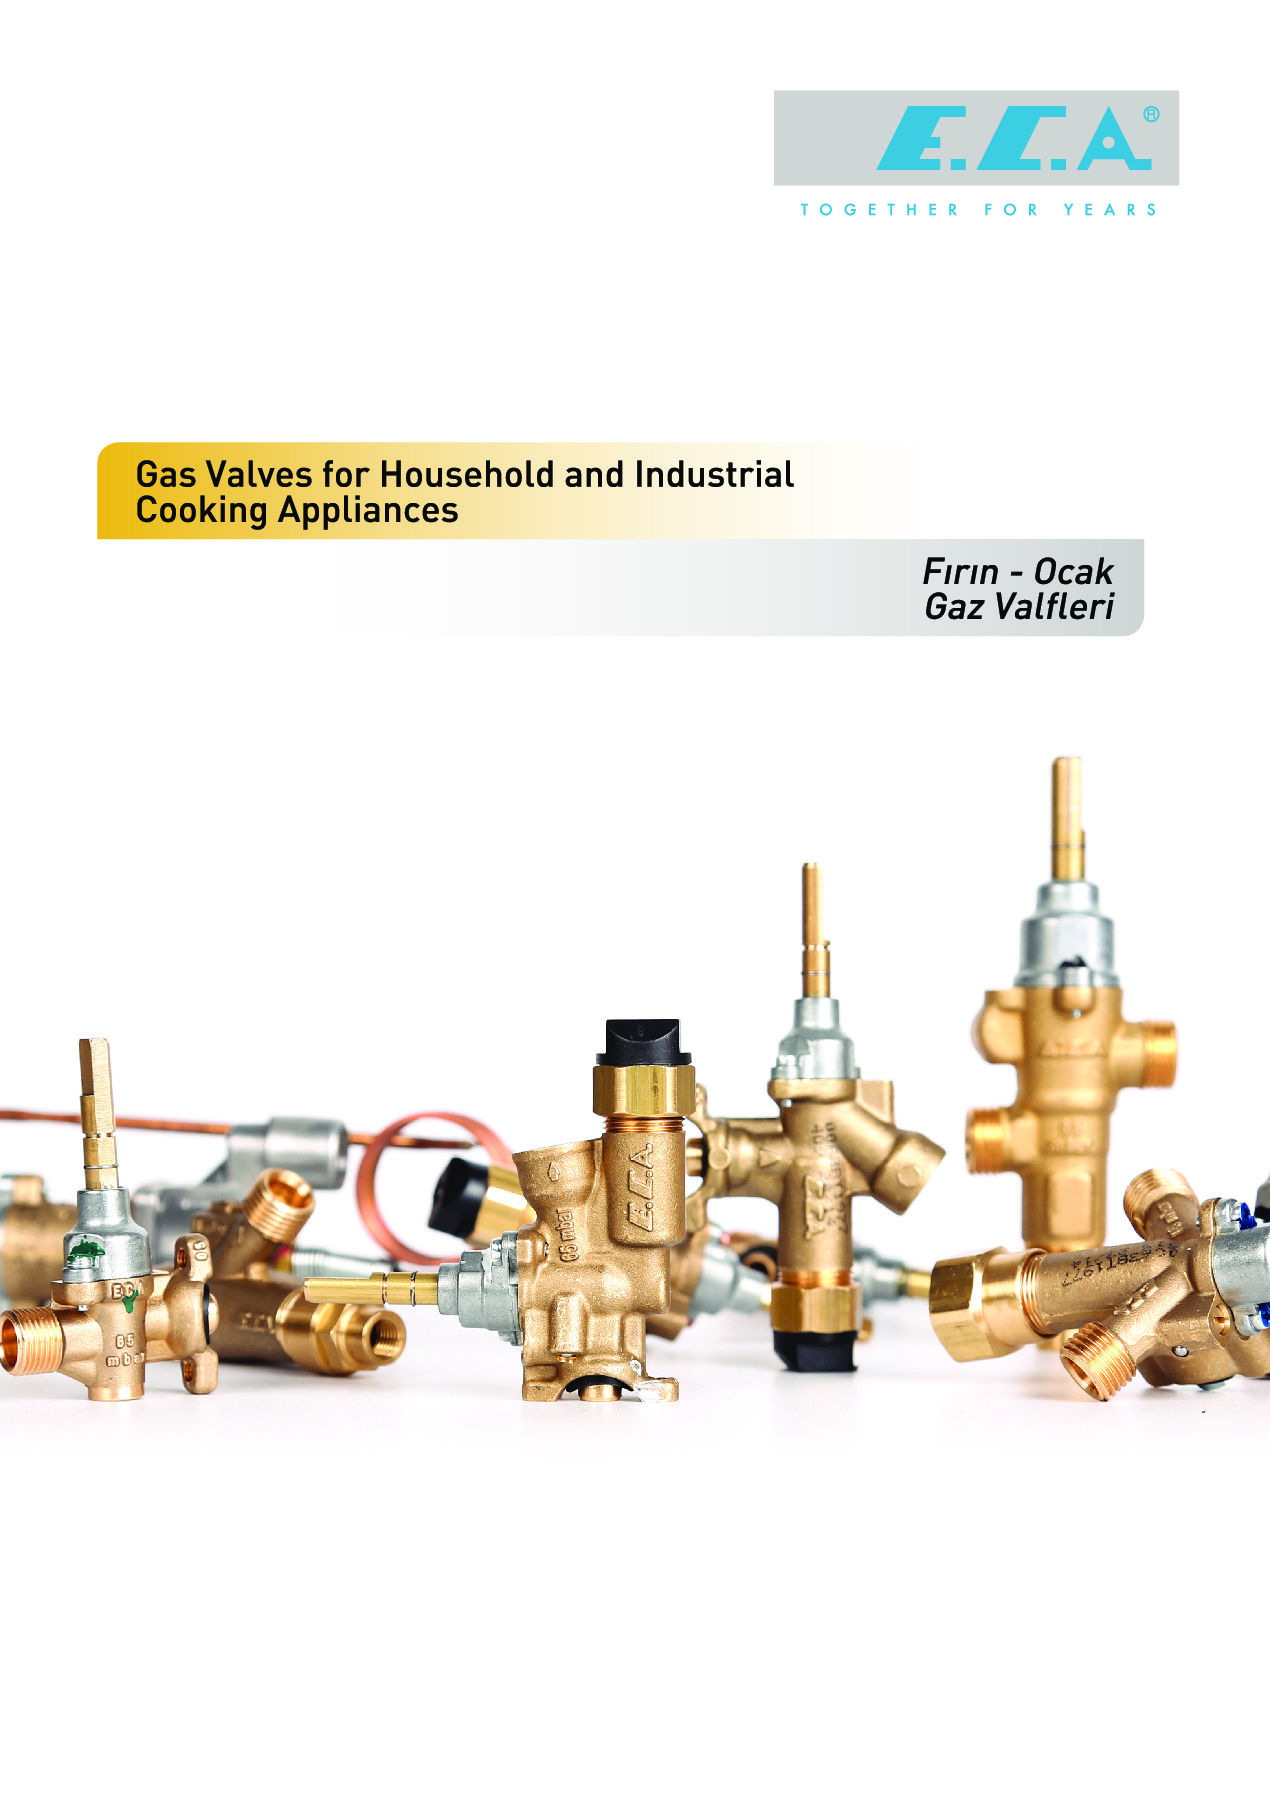 E.C.A. Gas Valves for Household and Industrial Cooking Appliances Catalogue